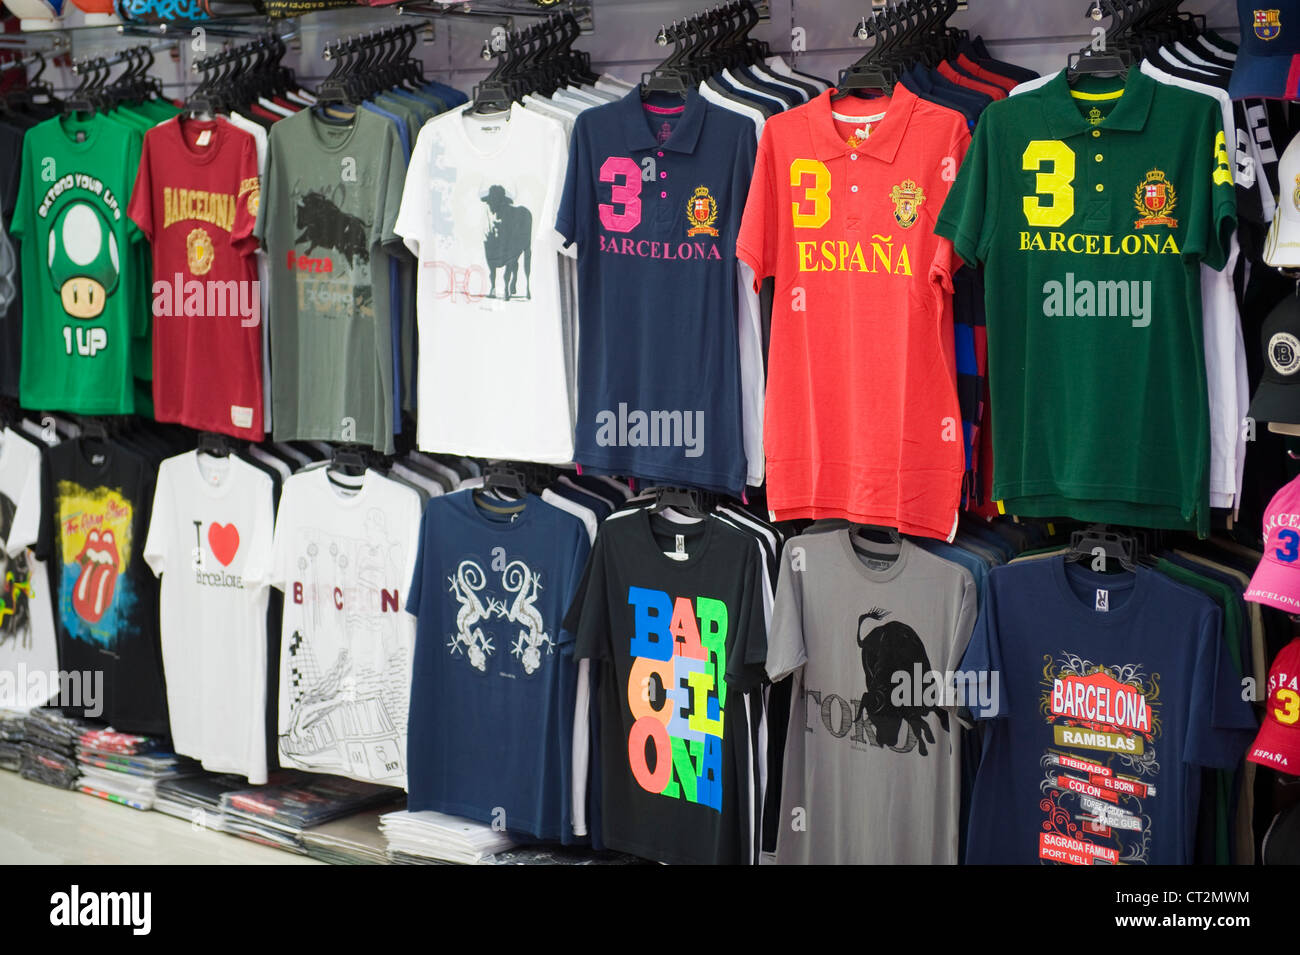 T Shirts Hanging In A Souvenir Shop In Barcelona Stock